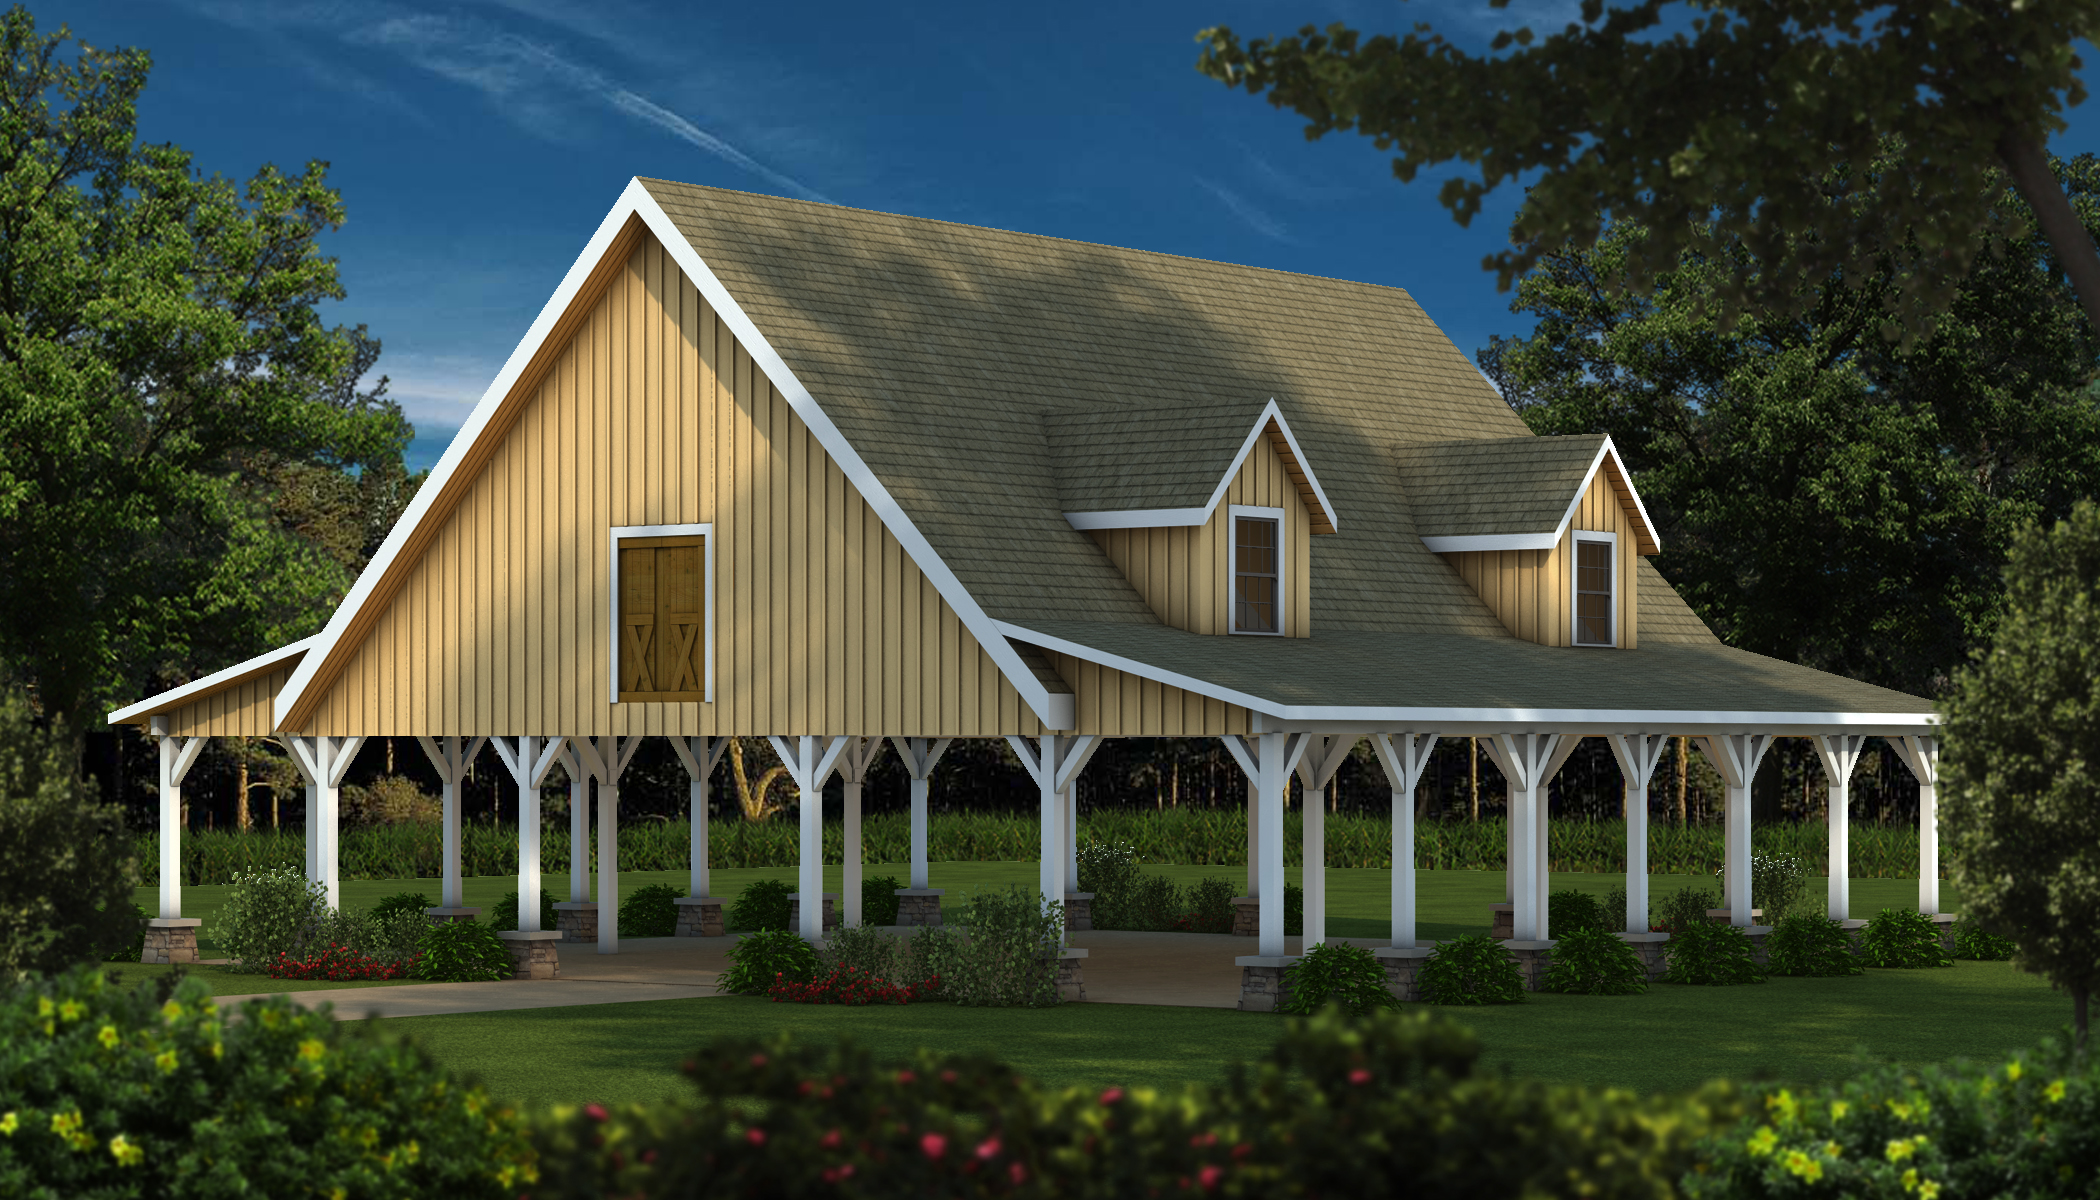 Southland launches classic wood barn kits for Wood barn homes